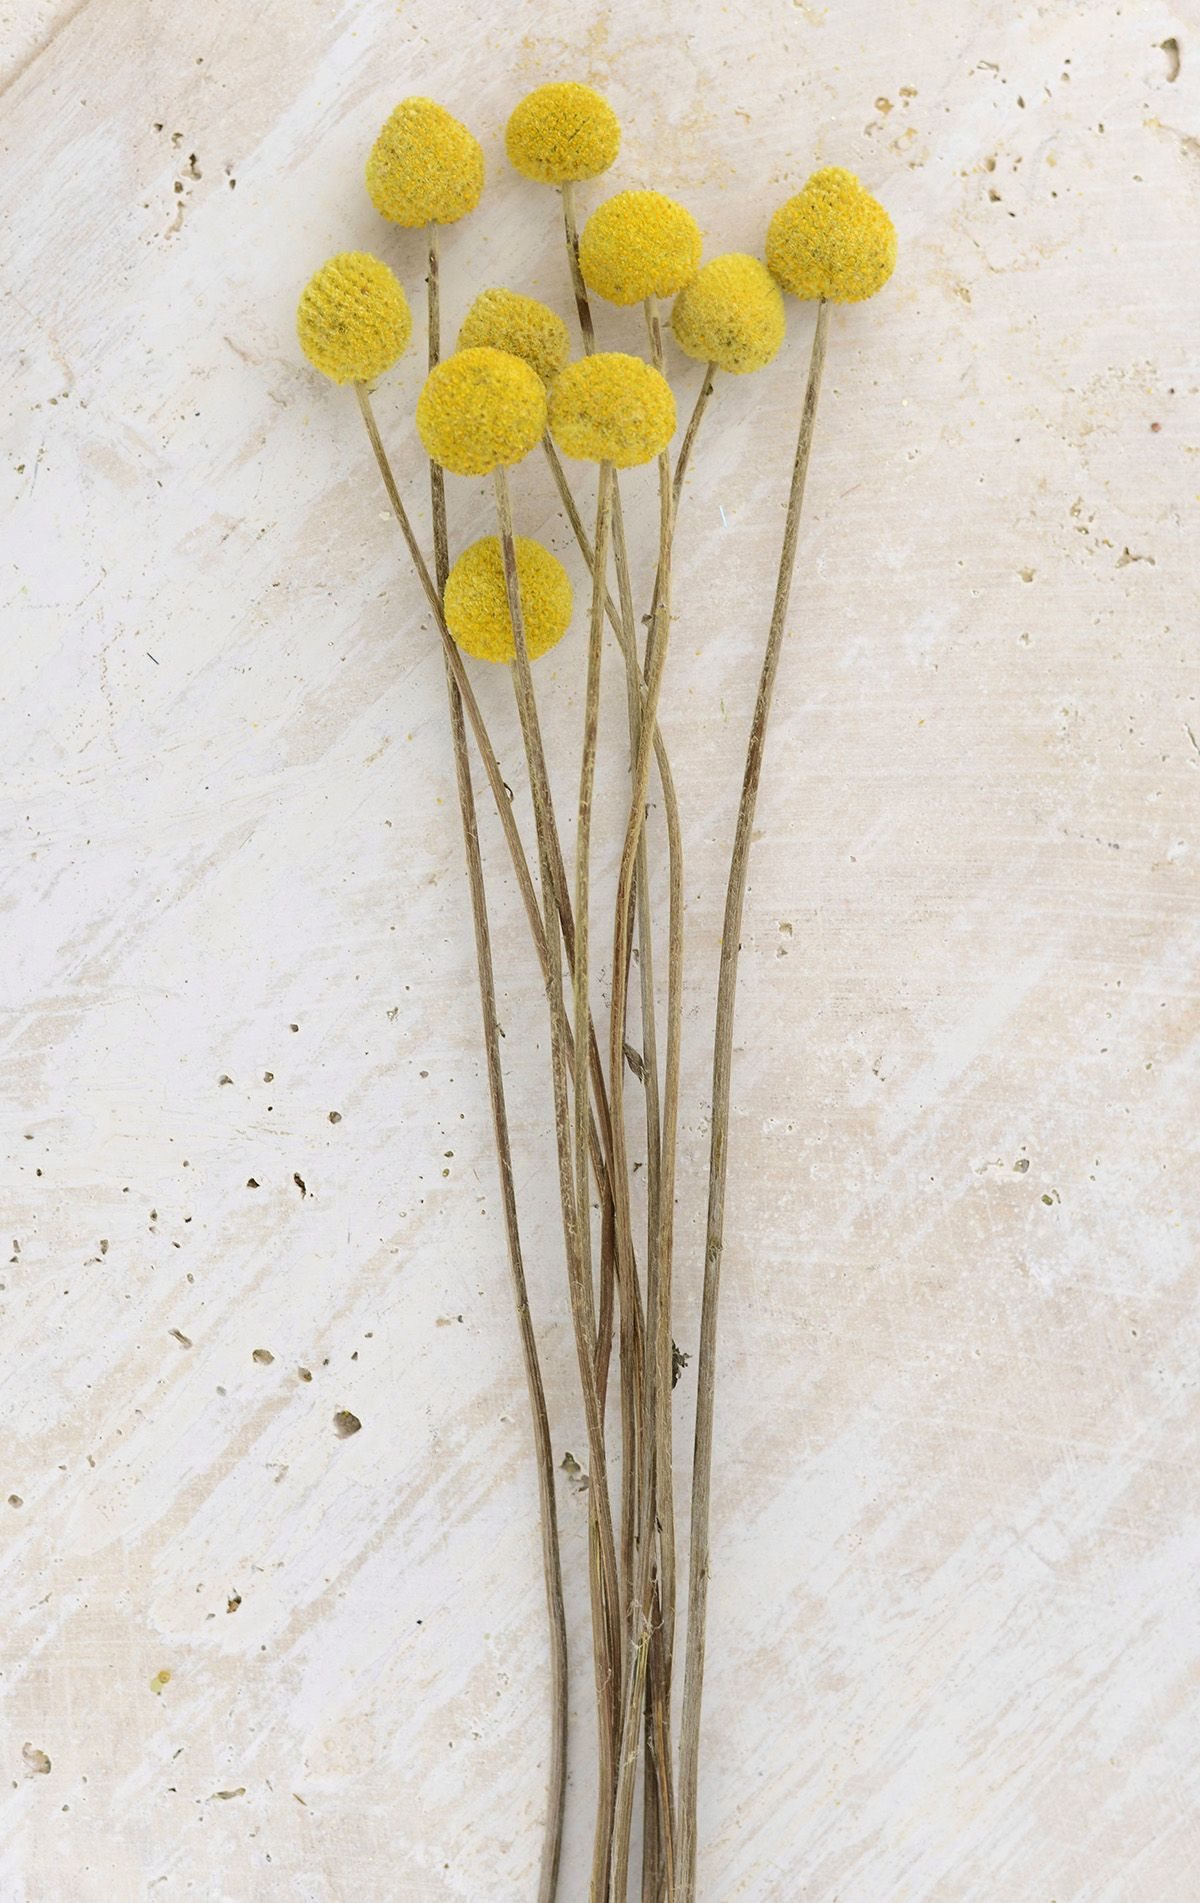 Preserved Billy Ball Flowers Billy Buttons Flowers How To Preserve Flowers